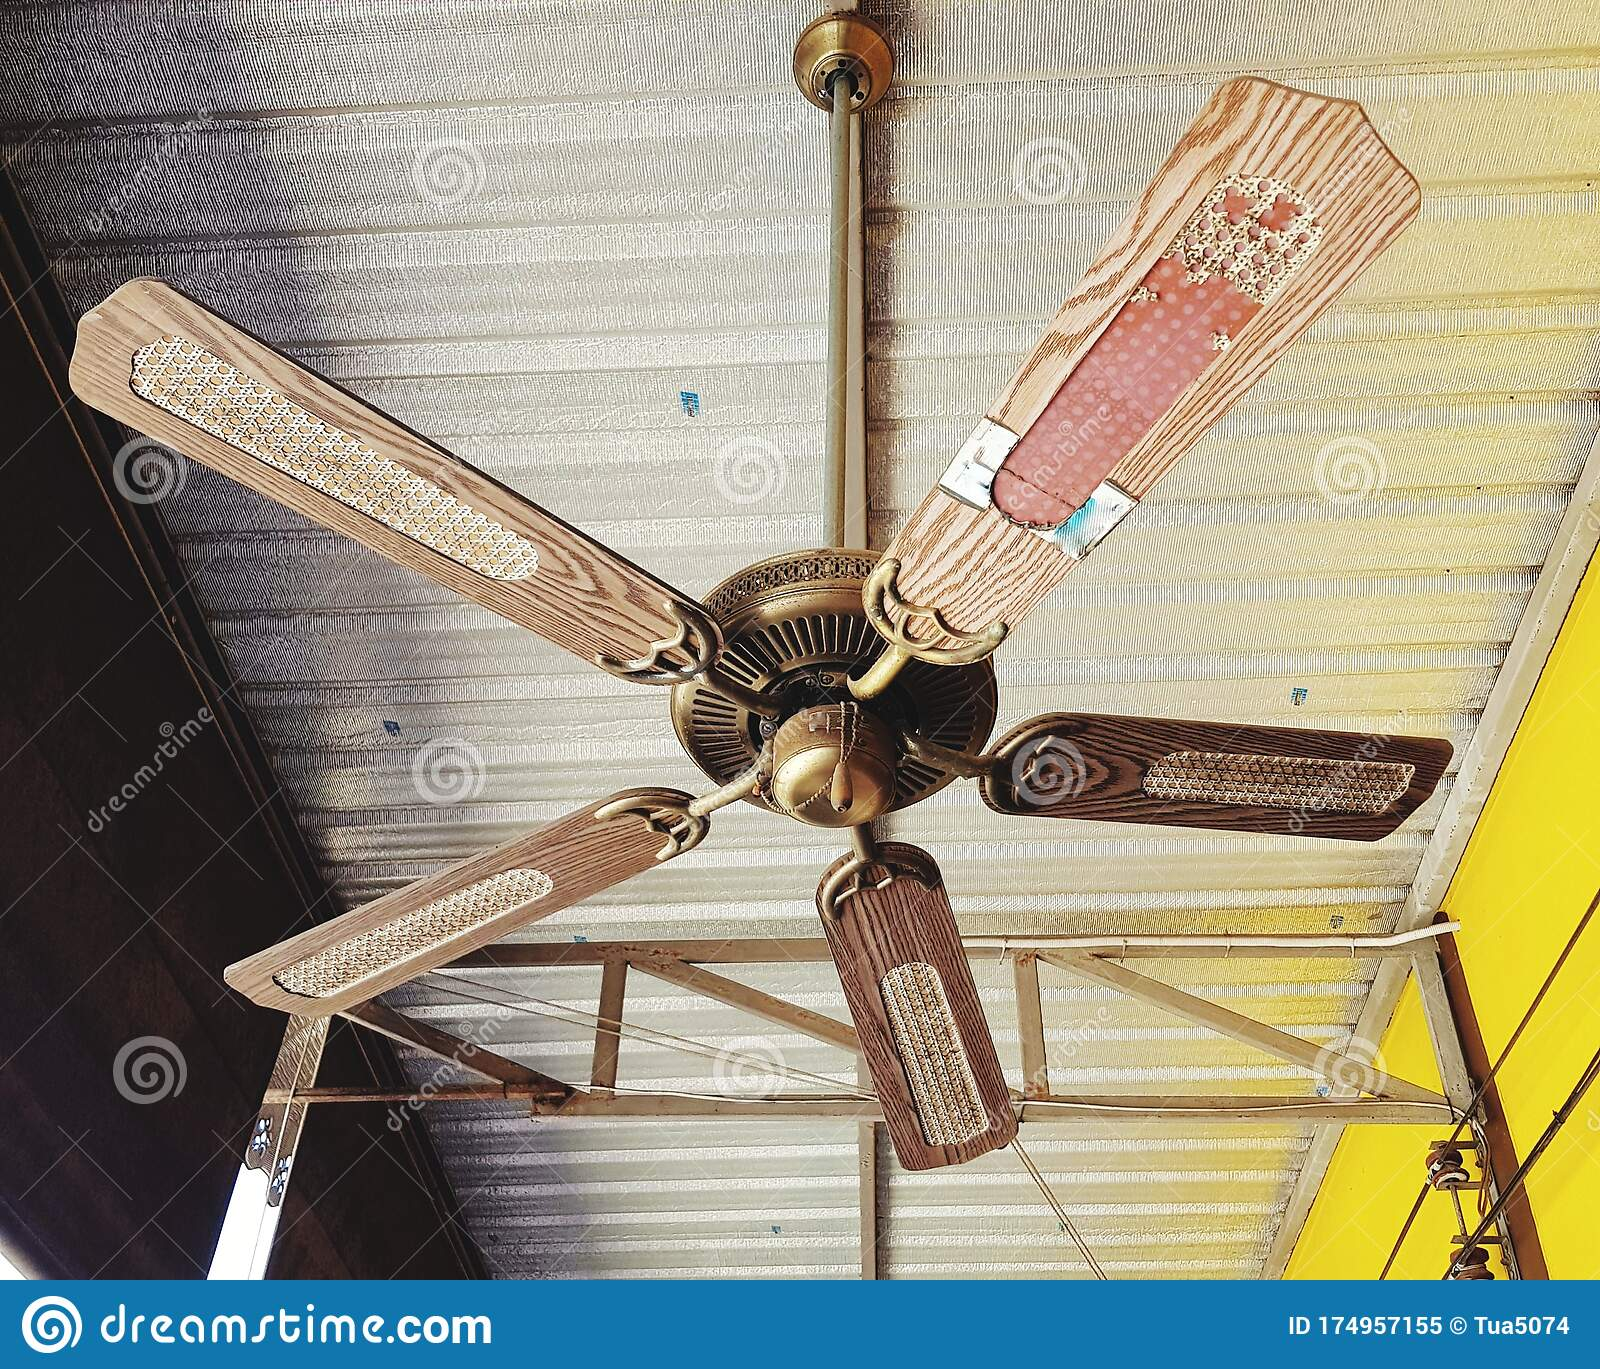 234 Antique Ceiling Fan Photos Free Royalty Free Stock Photos From Dreamstime